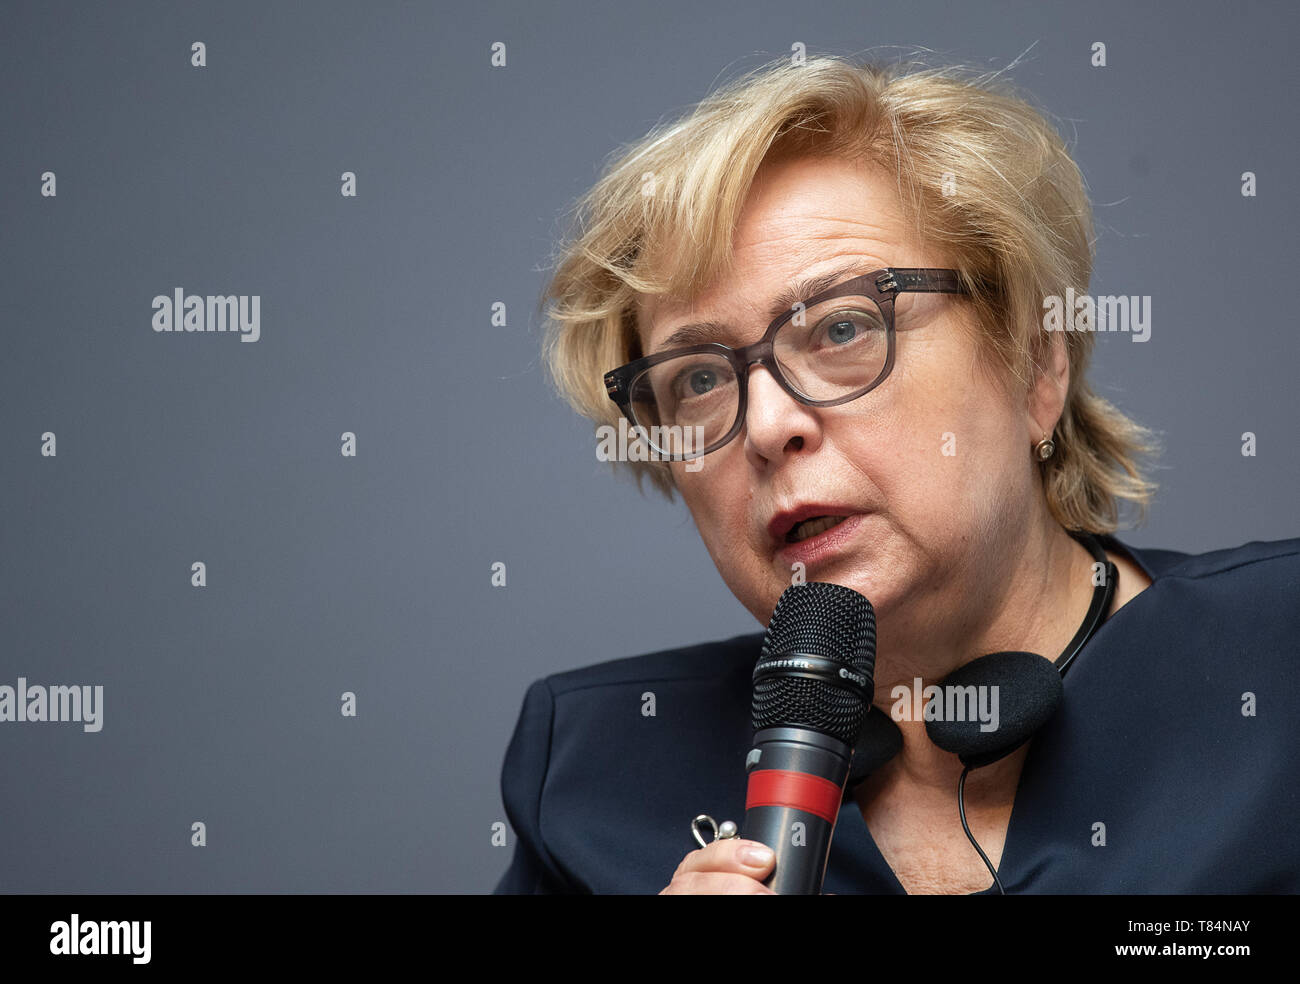 11 May 2019, Baden-Wuerttemberg, Stuttgart: Malgorzata Gersdorf, President of the Polish Supreme Court, will speak at the Haus der Wirtschaft during the award ceremony of the Theodor Heuss Prize. She is the winner of the 2019 award. Photo: Sebastian Gollnow/dpa - Stock Image